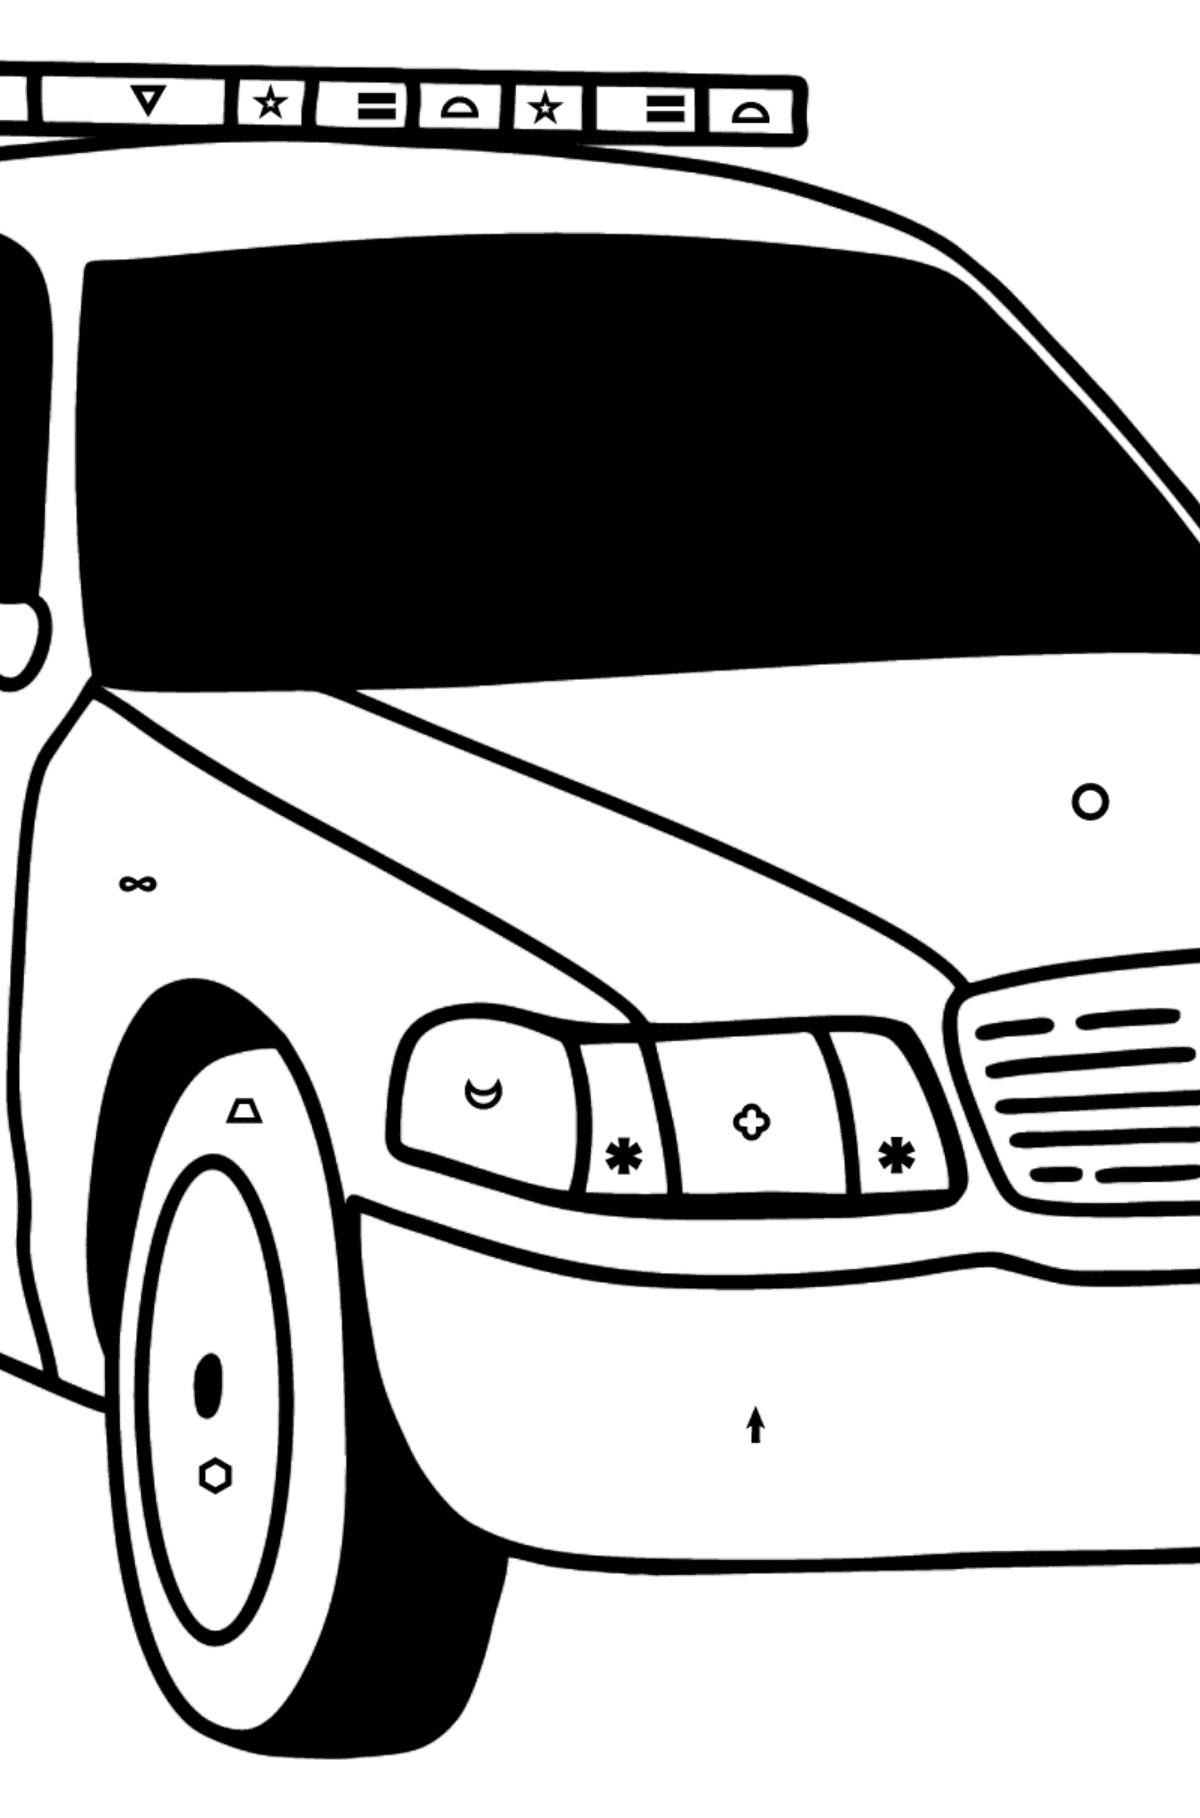 US Police Car coloring page - Coloring by Symbols and Geometric Shapes for Kids